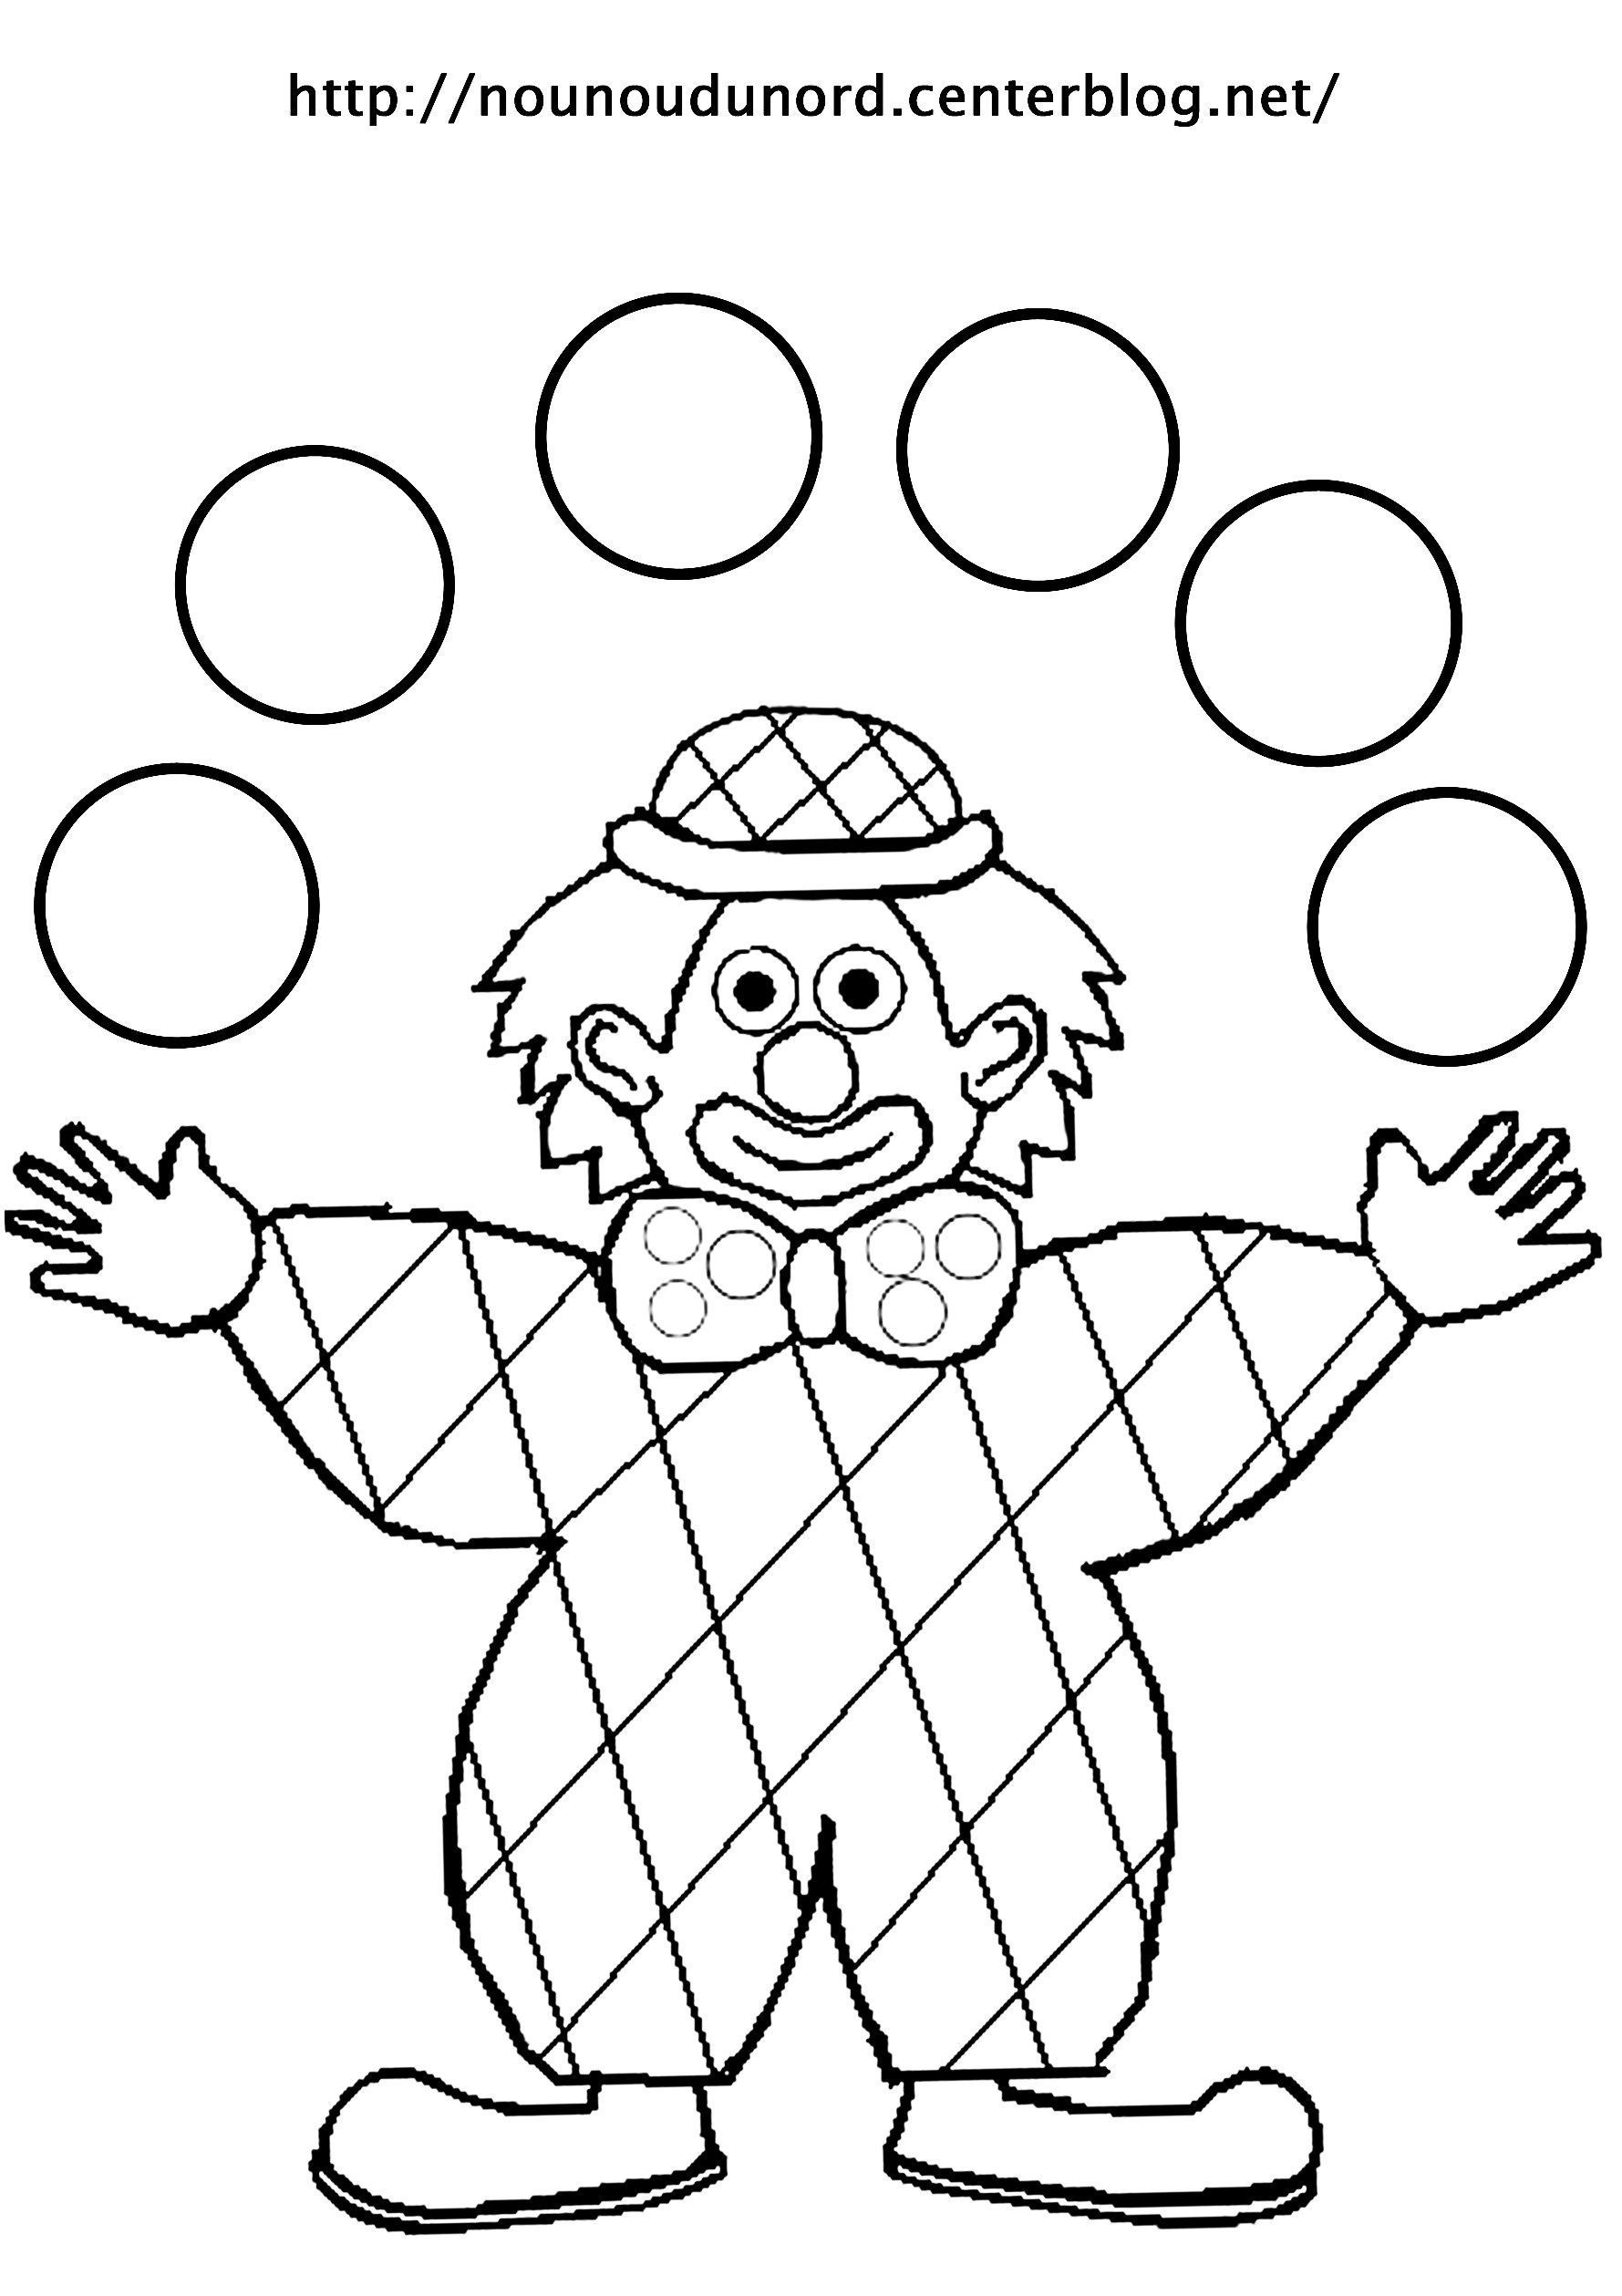 Coloriage clown page 2 - Nounoudunord coloriage ...